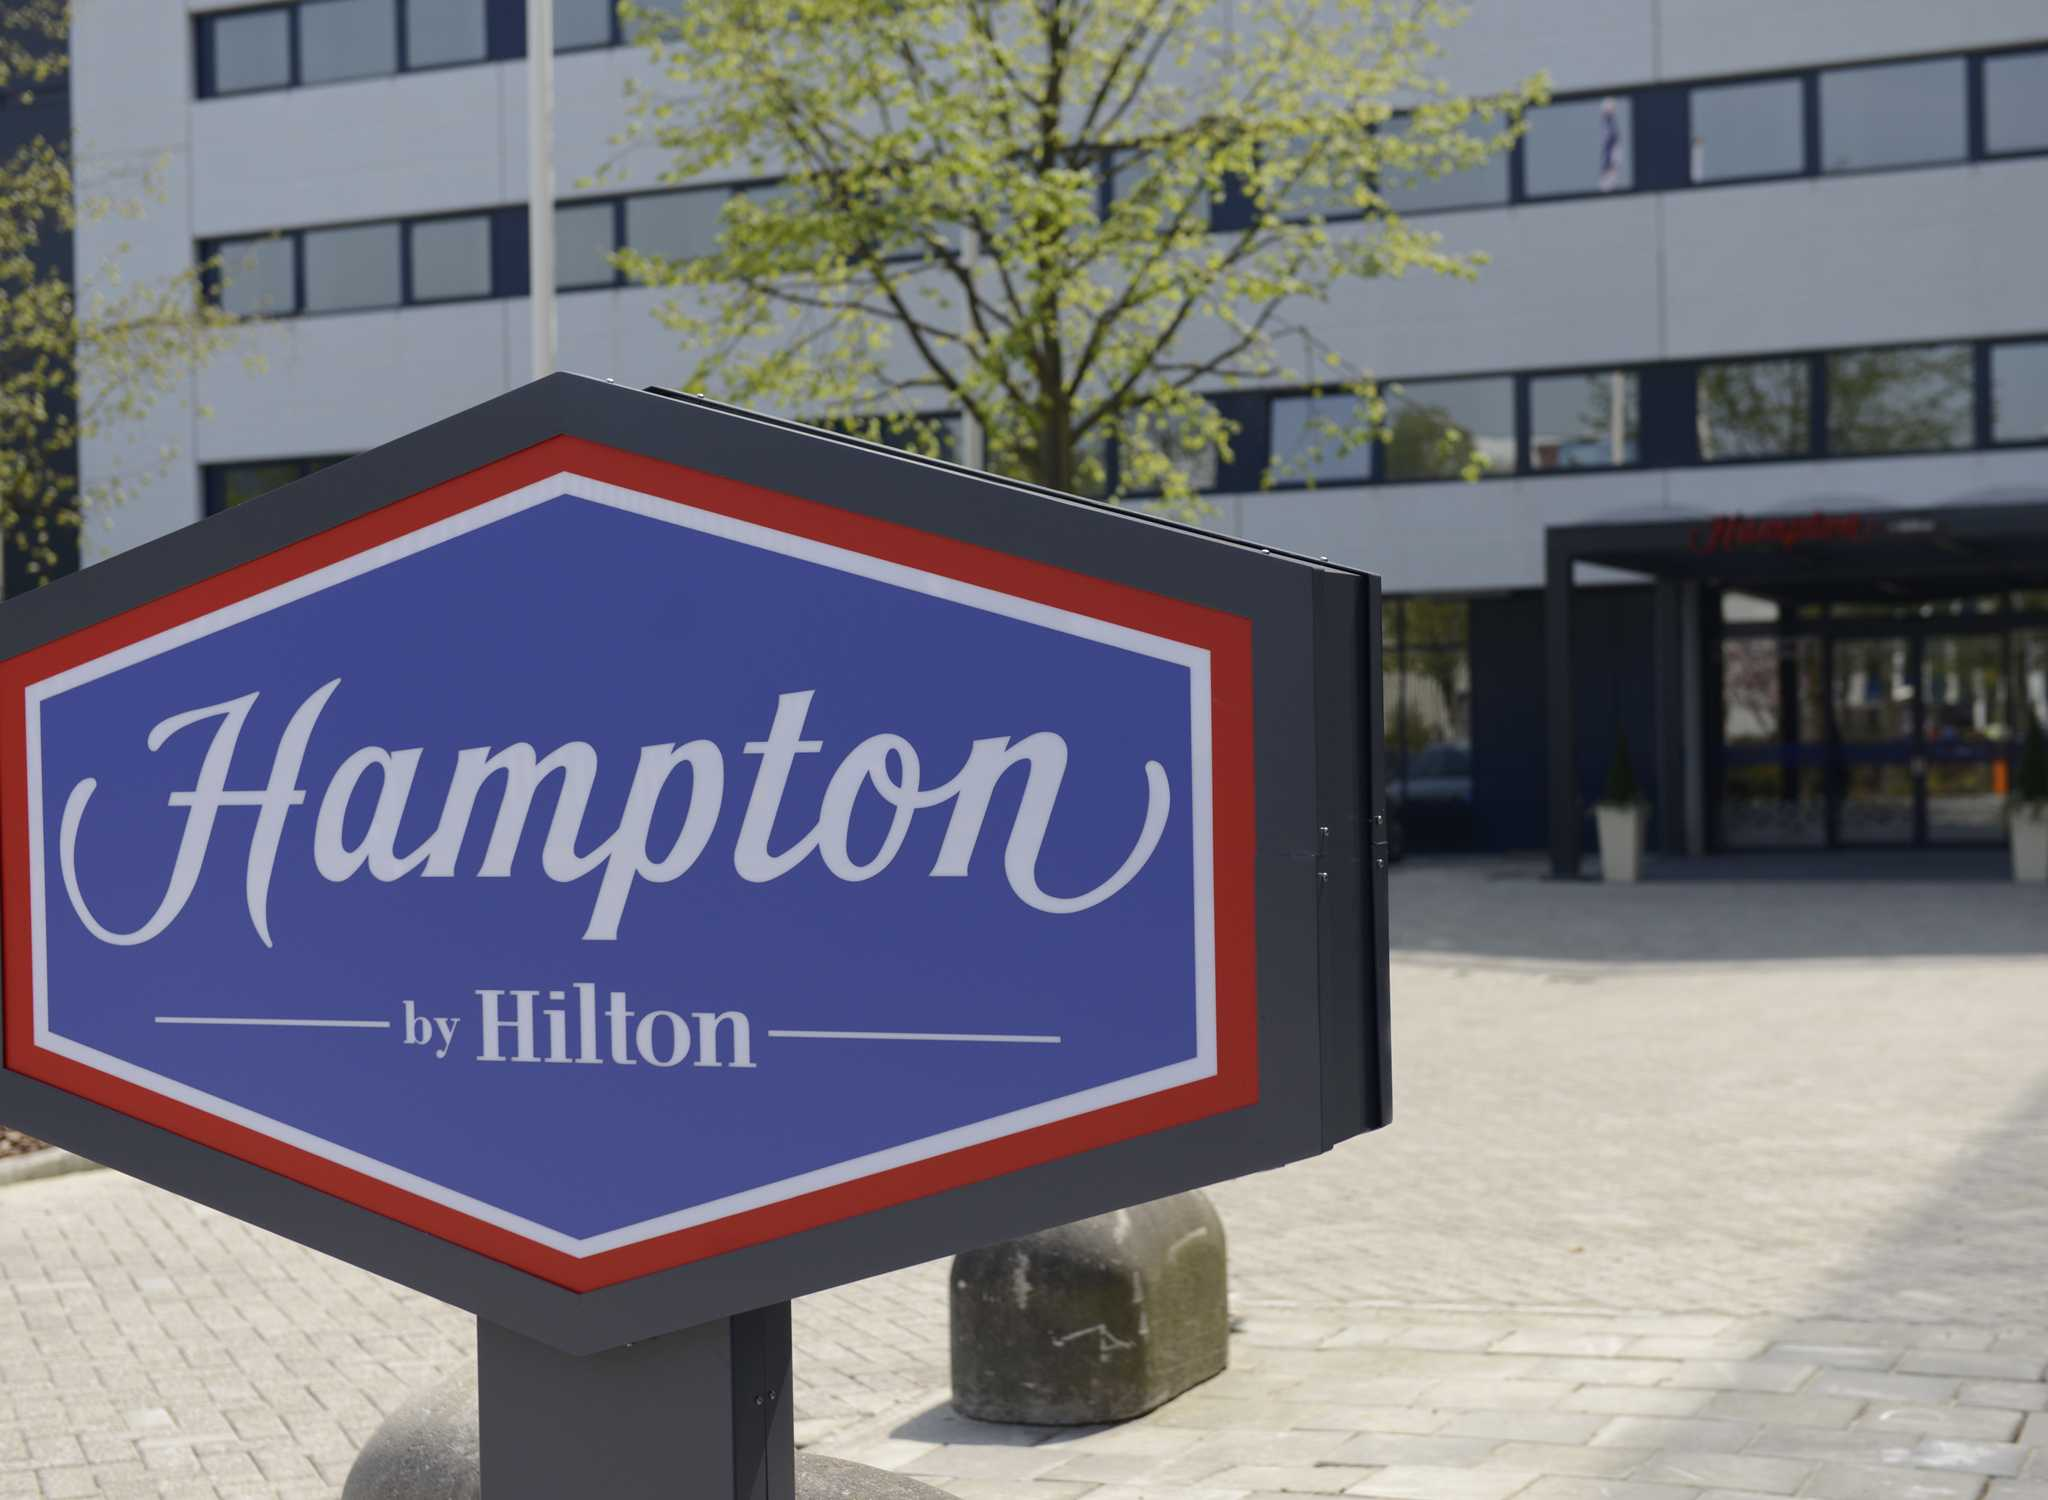 hampton by hilton rs232 wiring diagram db9 hotels and resorts niederlande holland